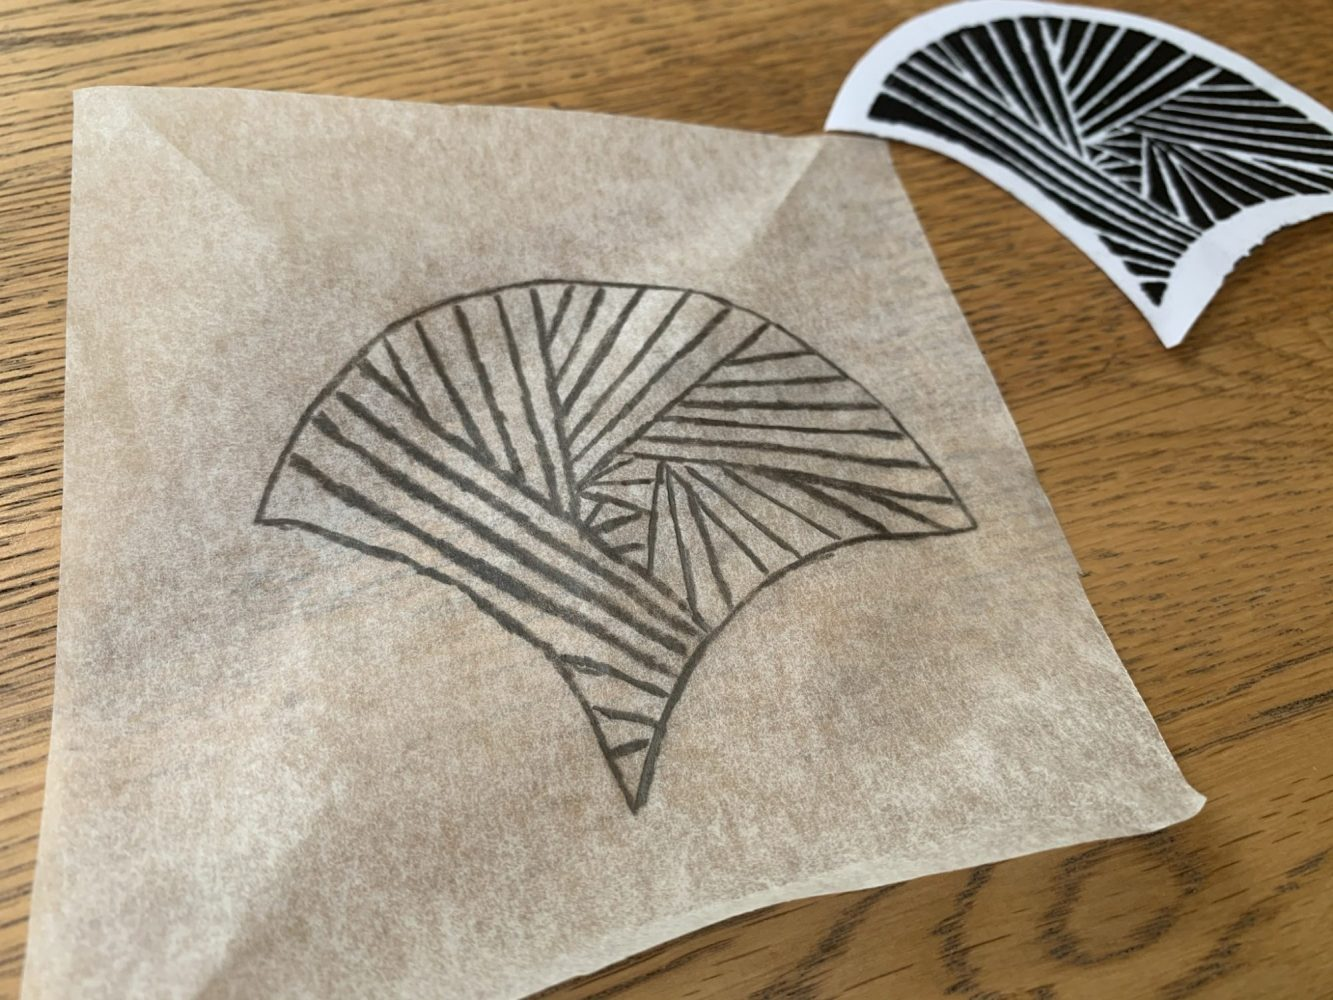 Geomertic fan shap drawn in pencil on a piece of tracing paper